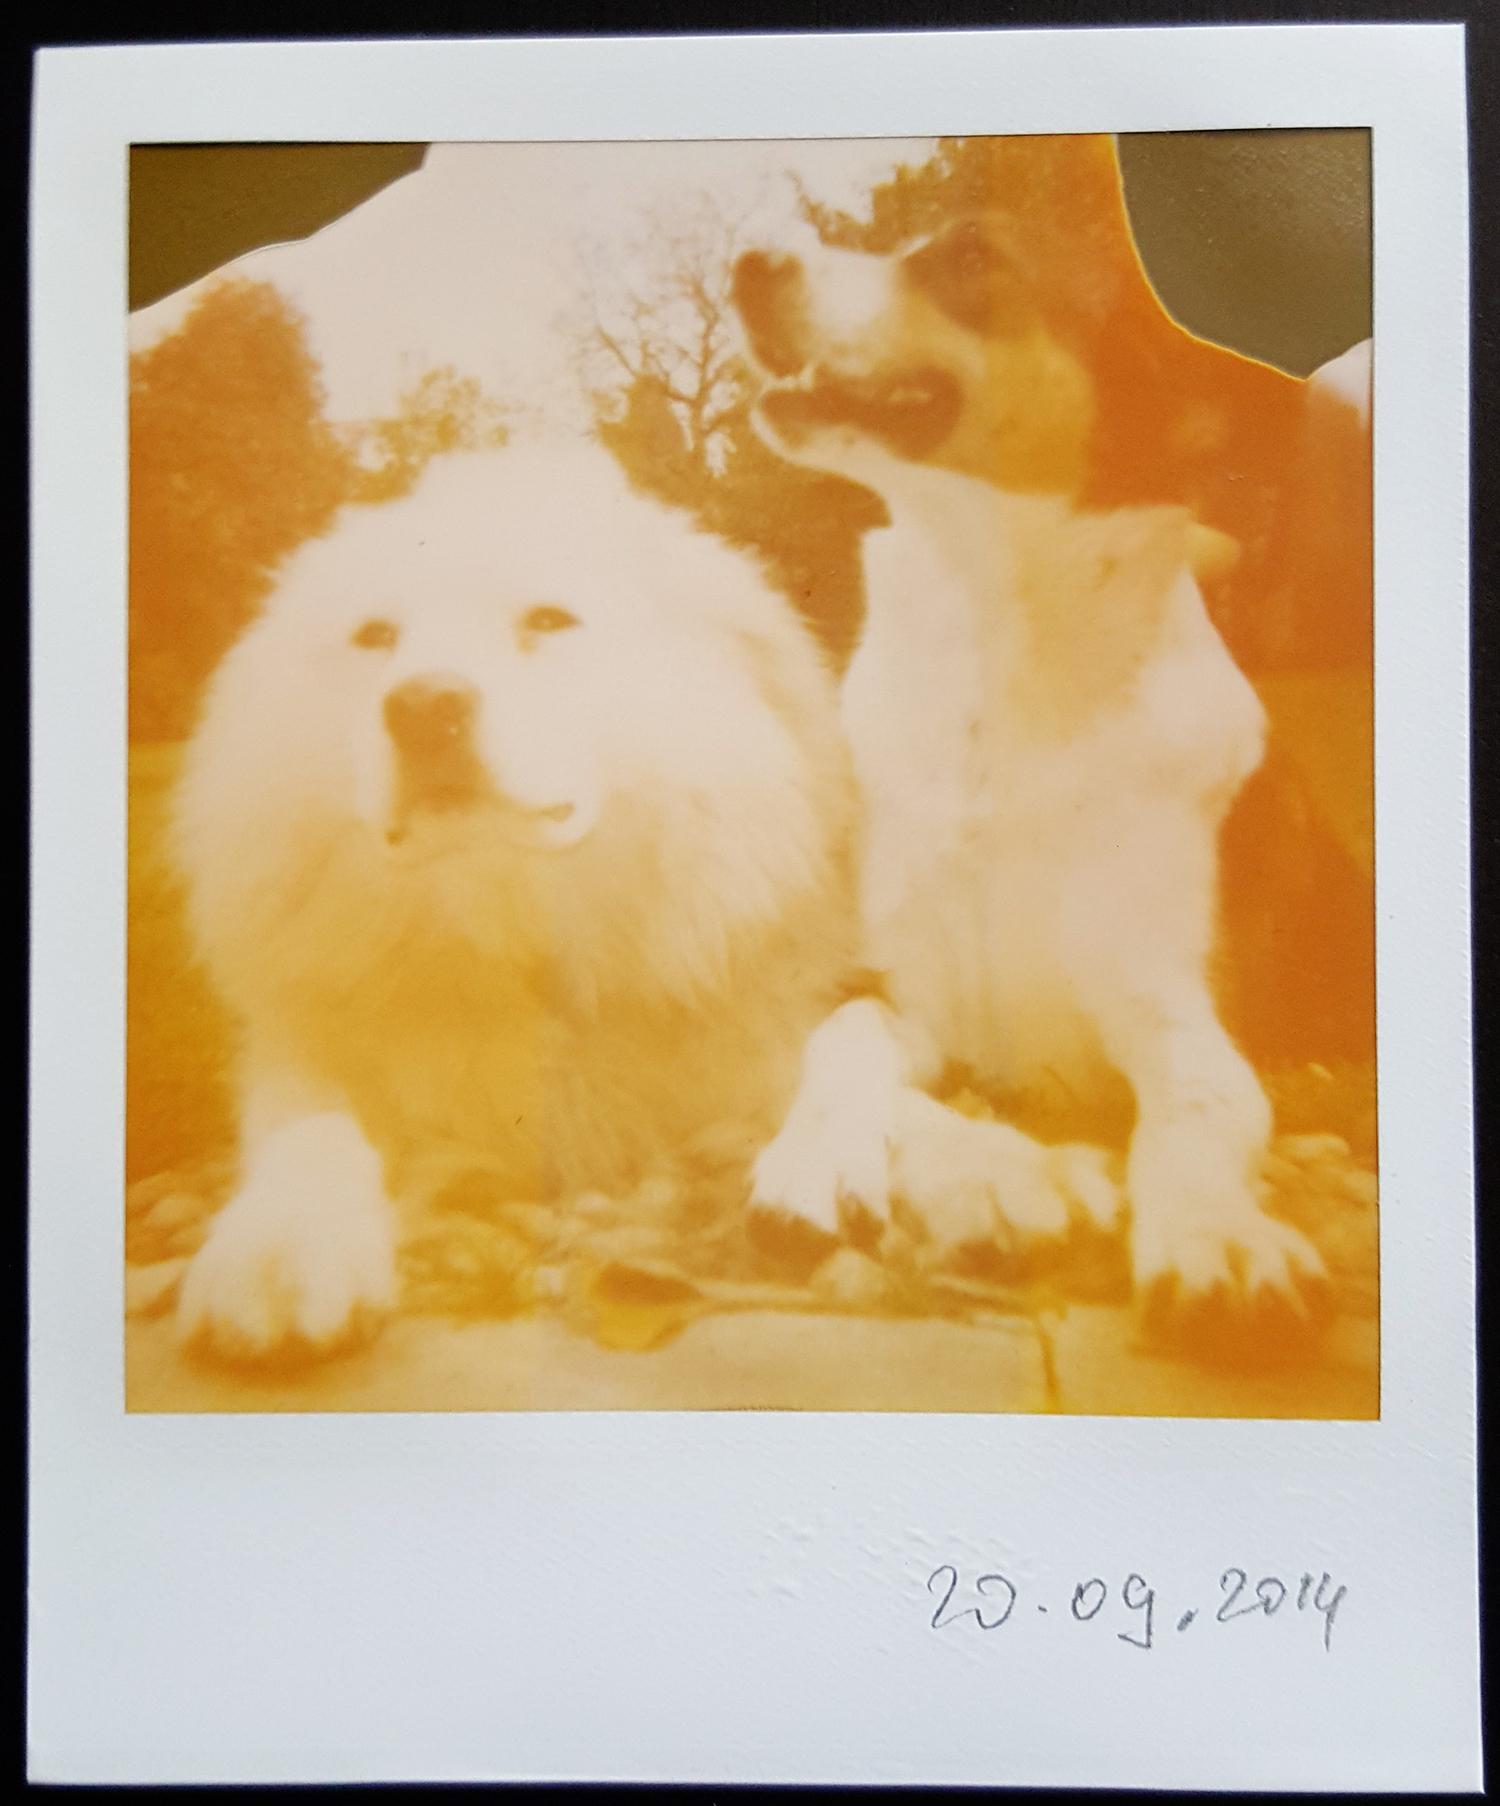 Portrait of my family's two dogs in our yard, taken using my grandmonether's Polaroid 600